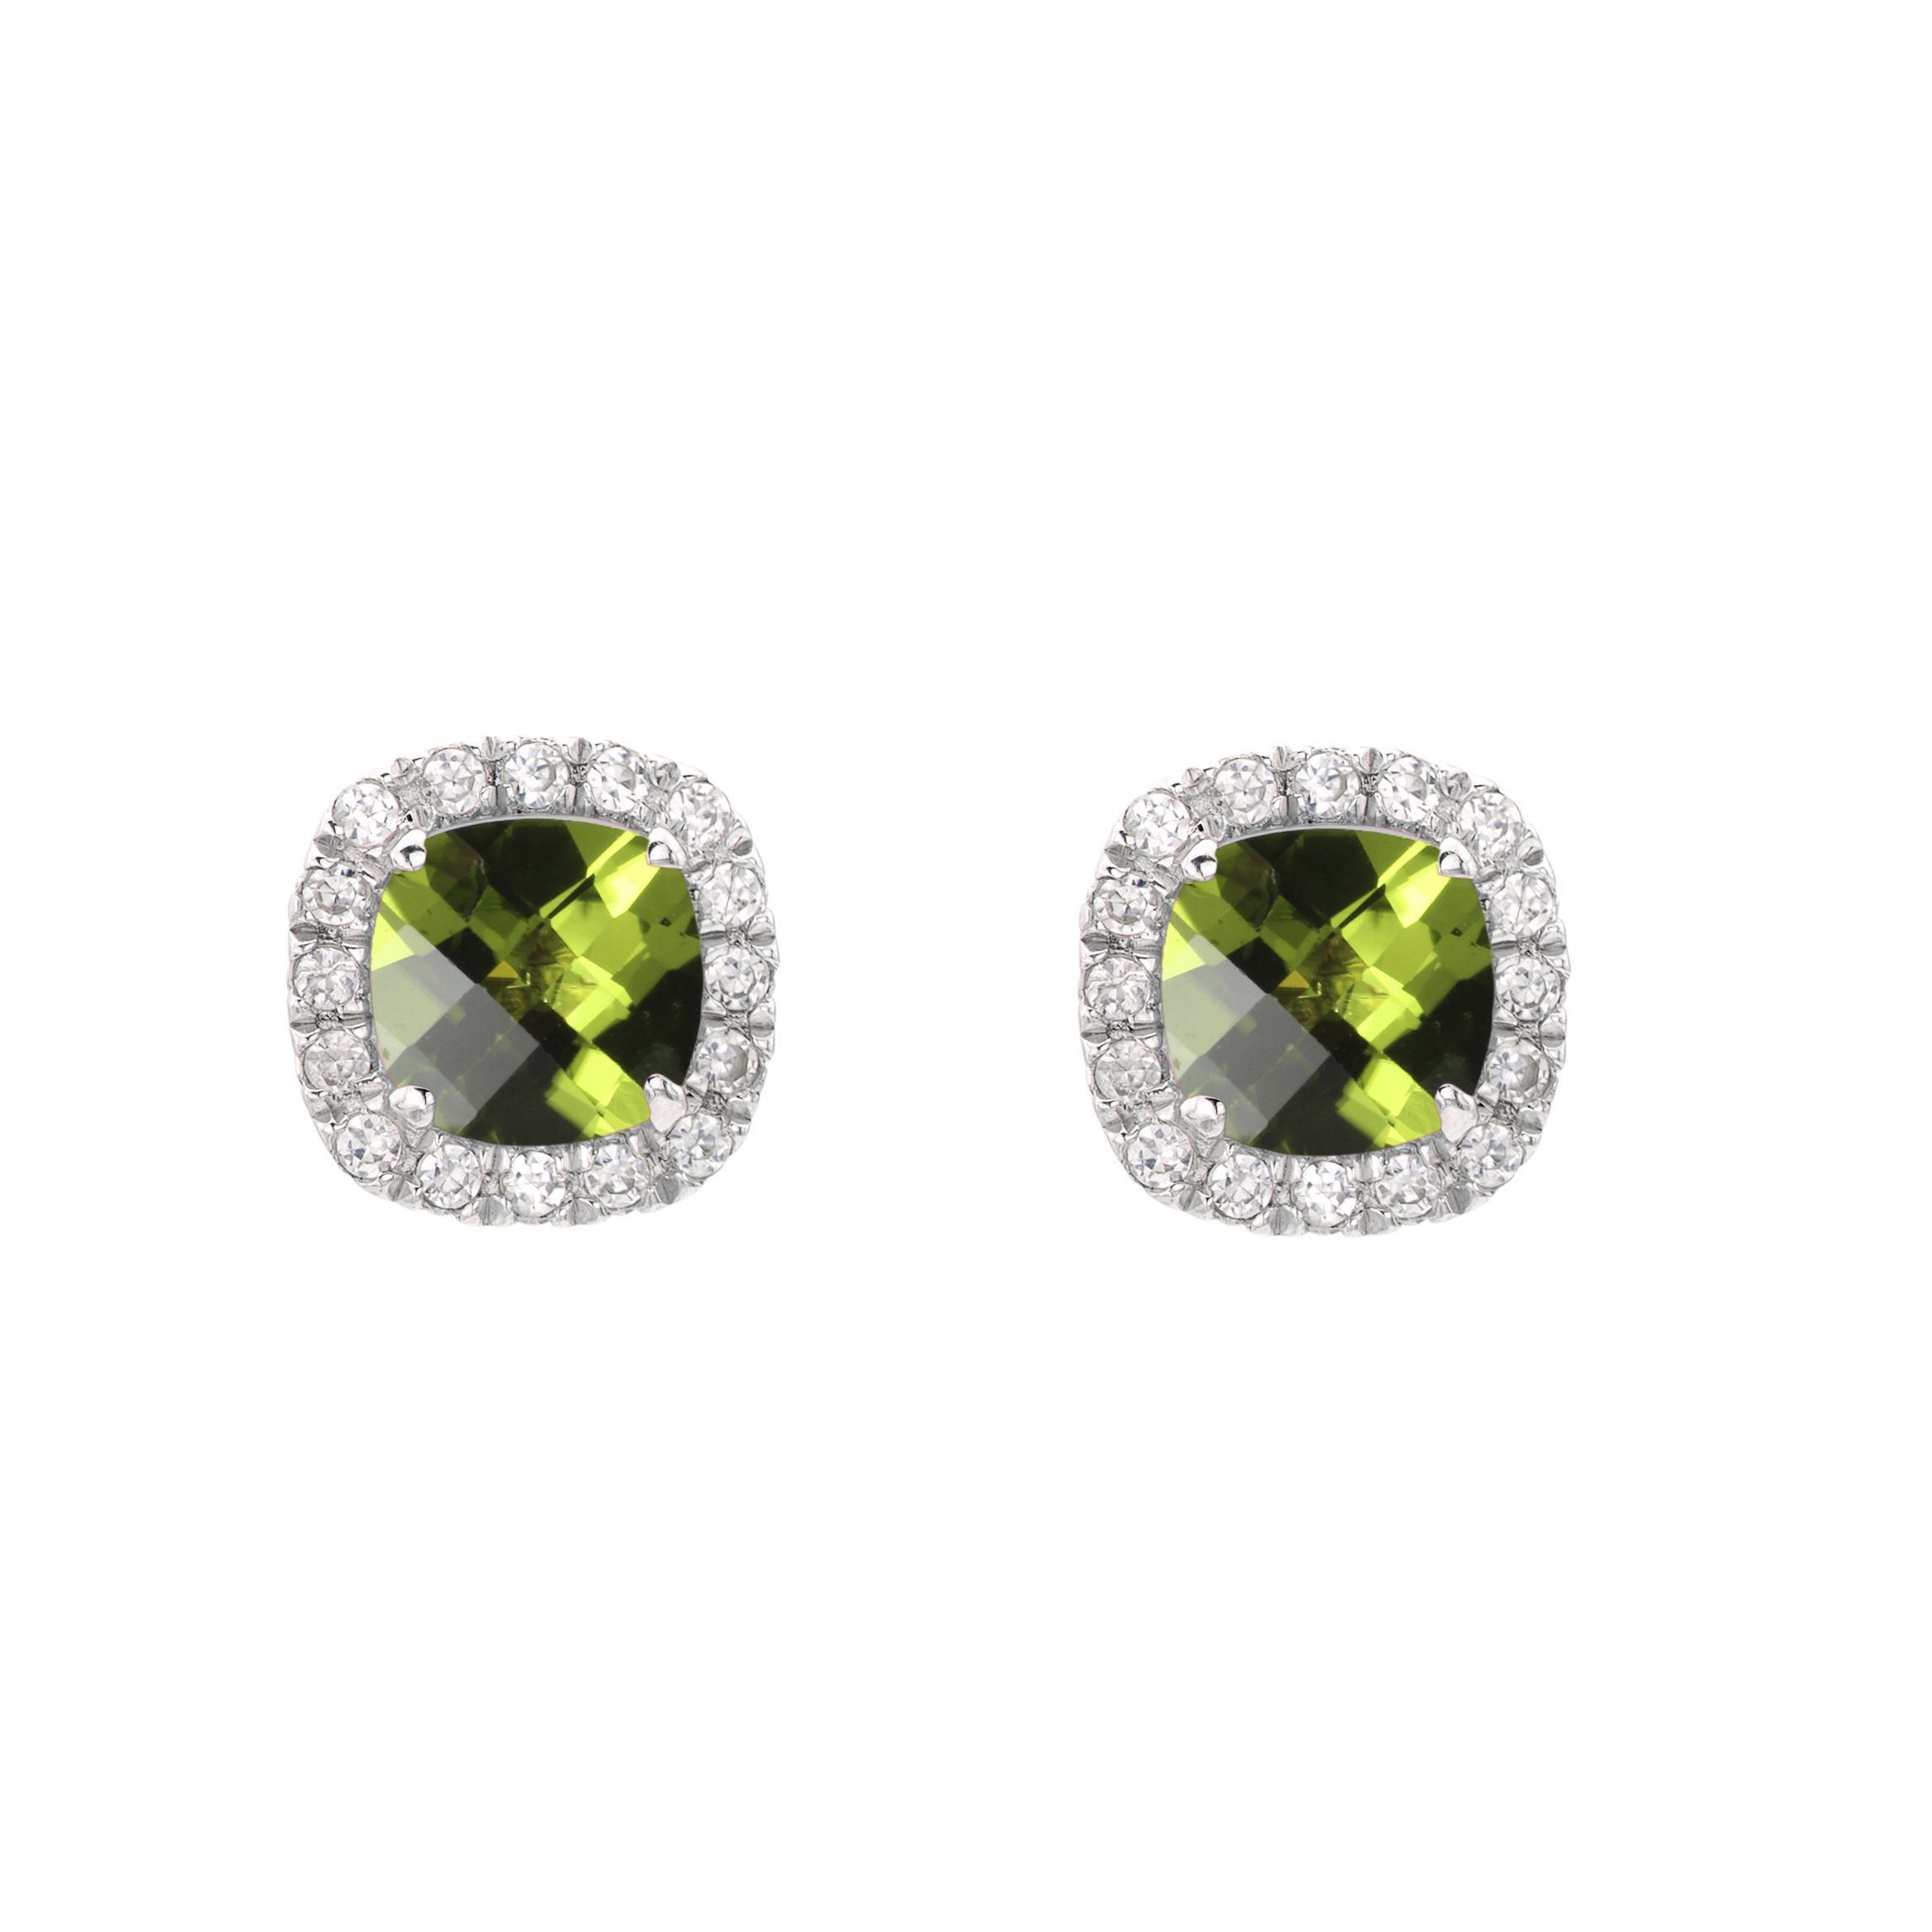 modern in round brilliant diamonds french cut product platinum home earrings stud sapphire